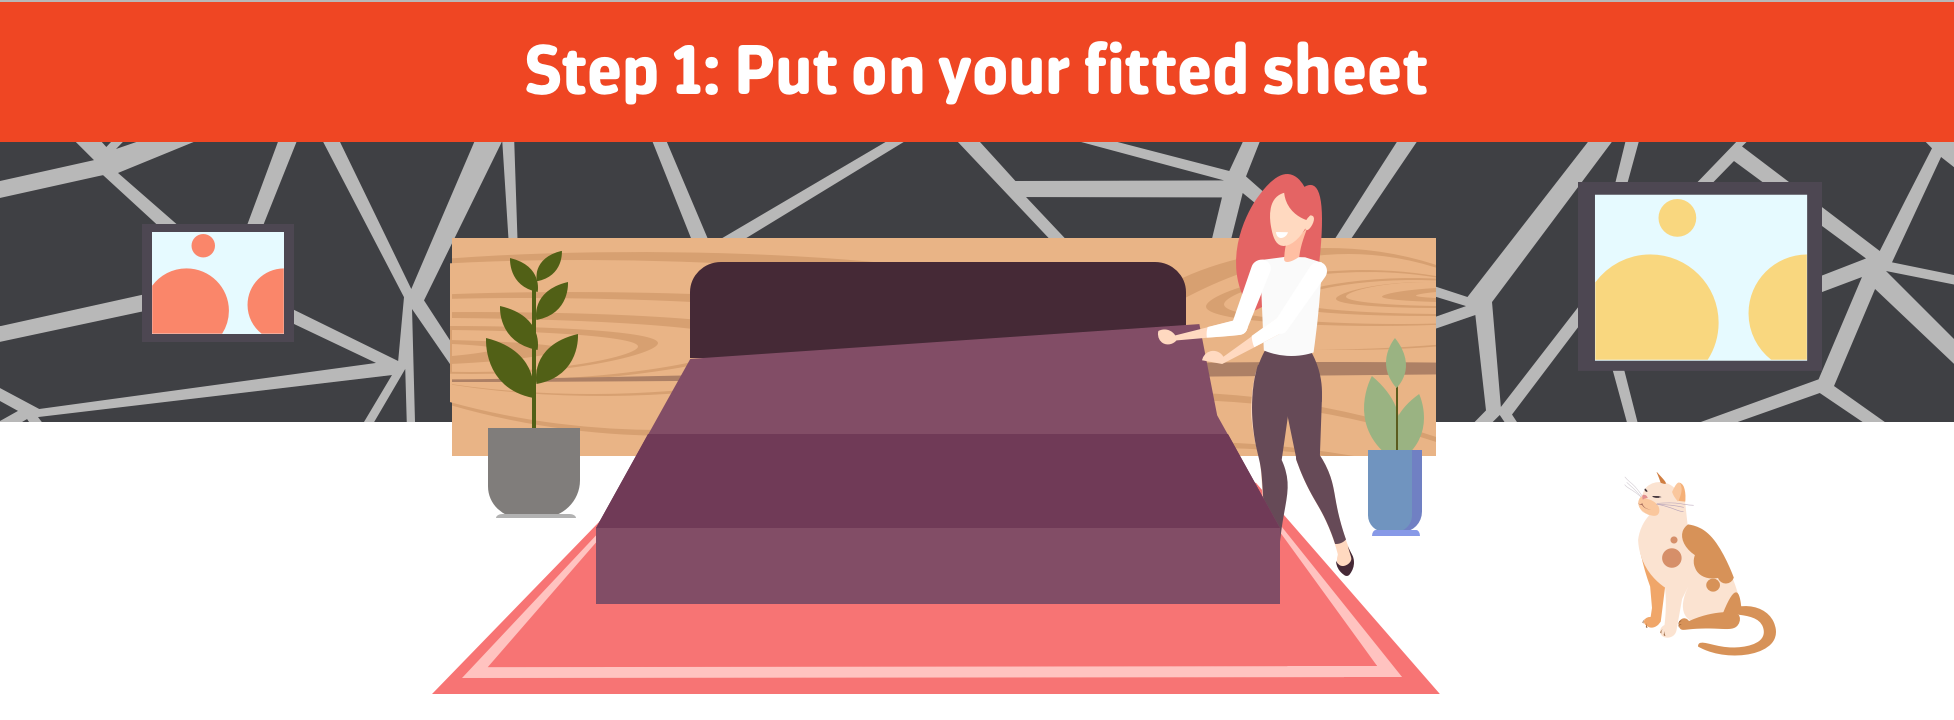 Put on your fitted sheet